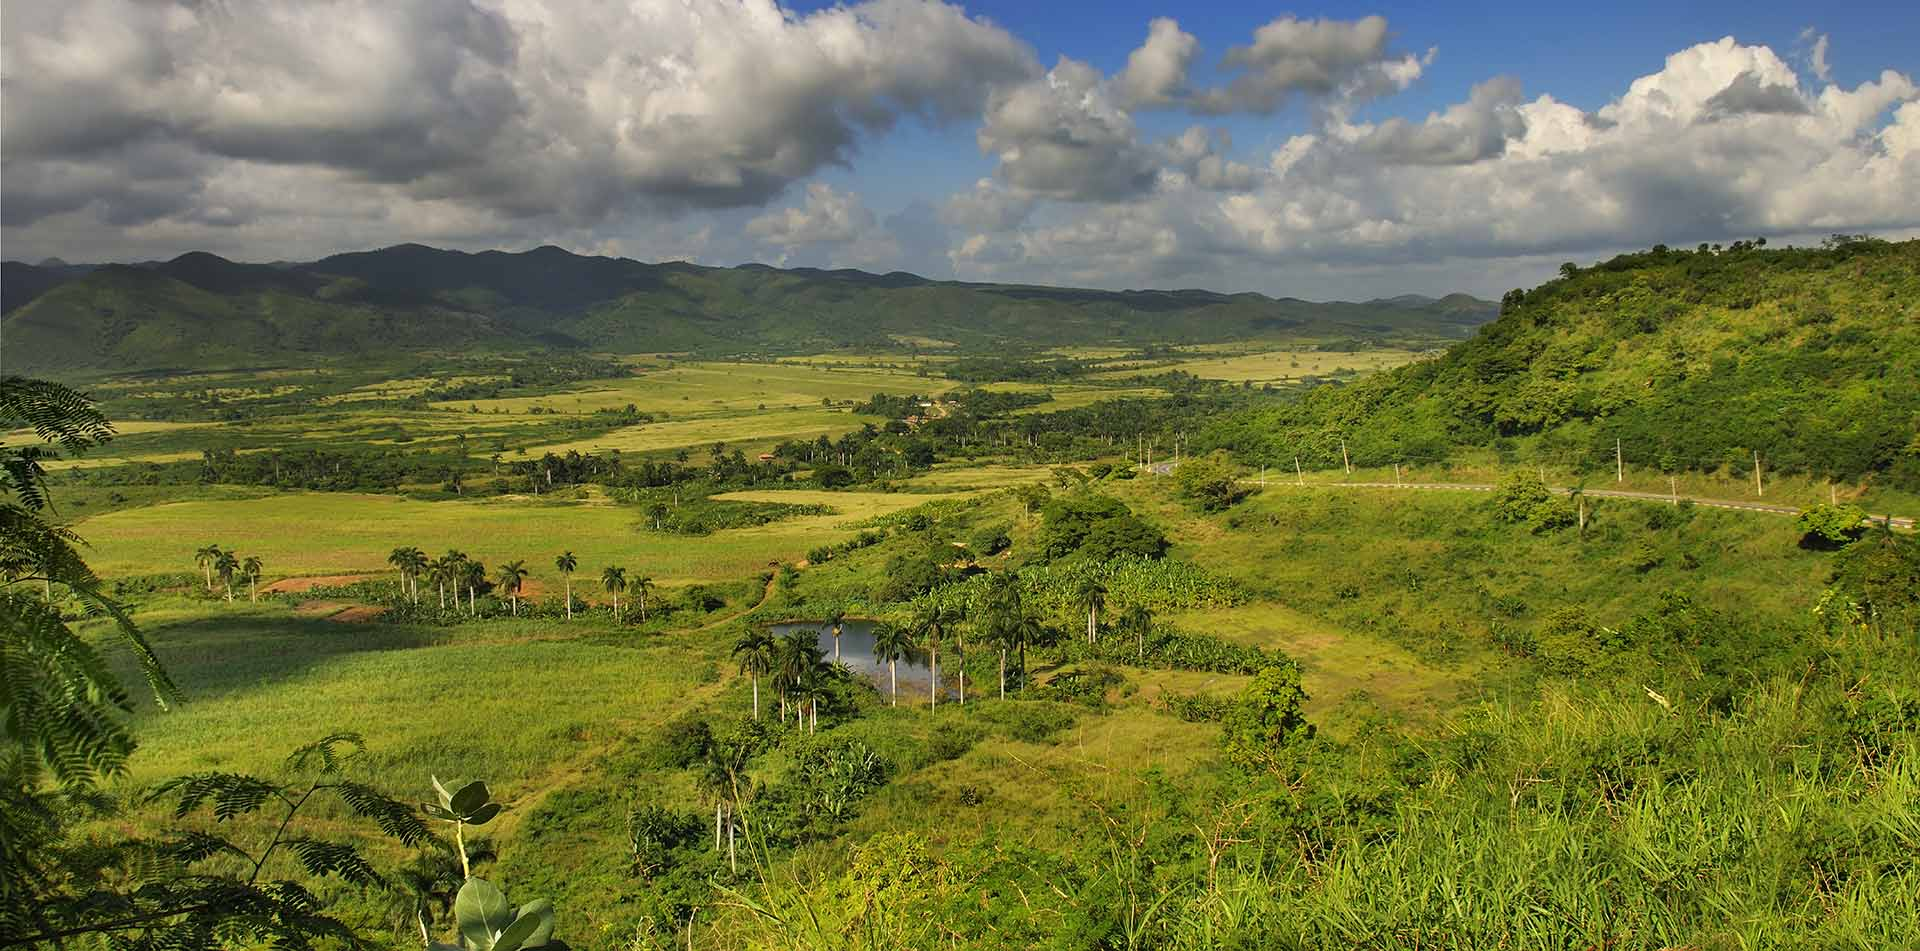 North America Caribbean Cuba Pinar del Rio Vinales Valley countryside view lush nature green - luxury vacation destinations